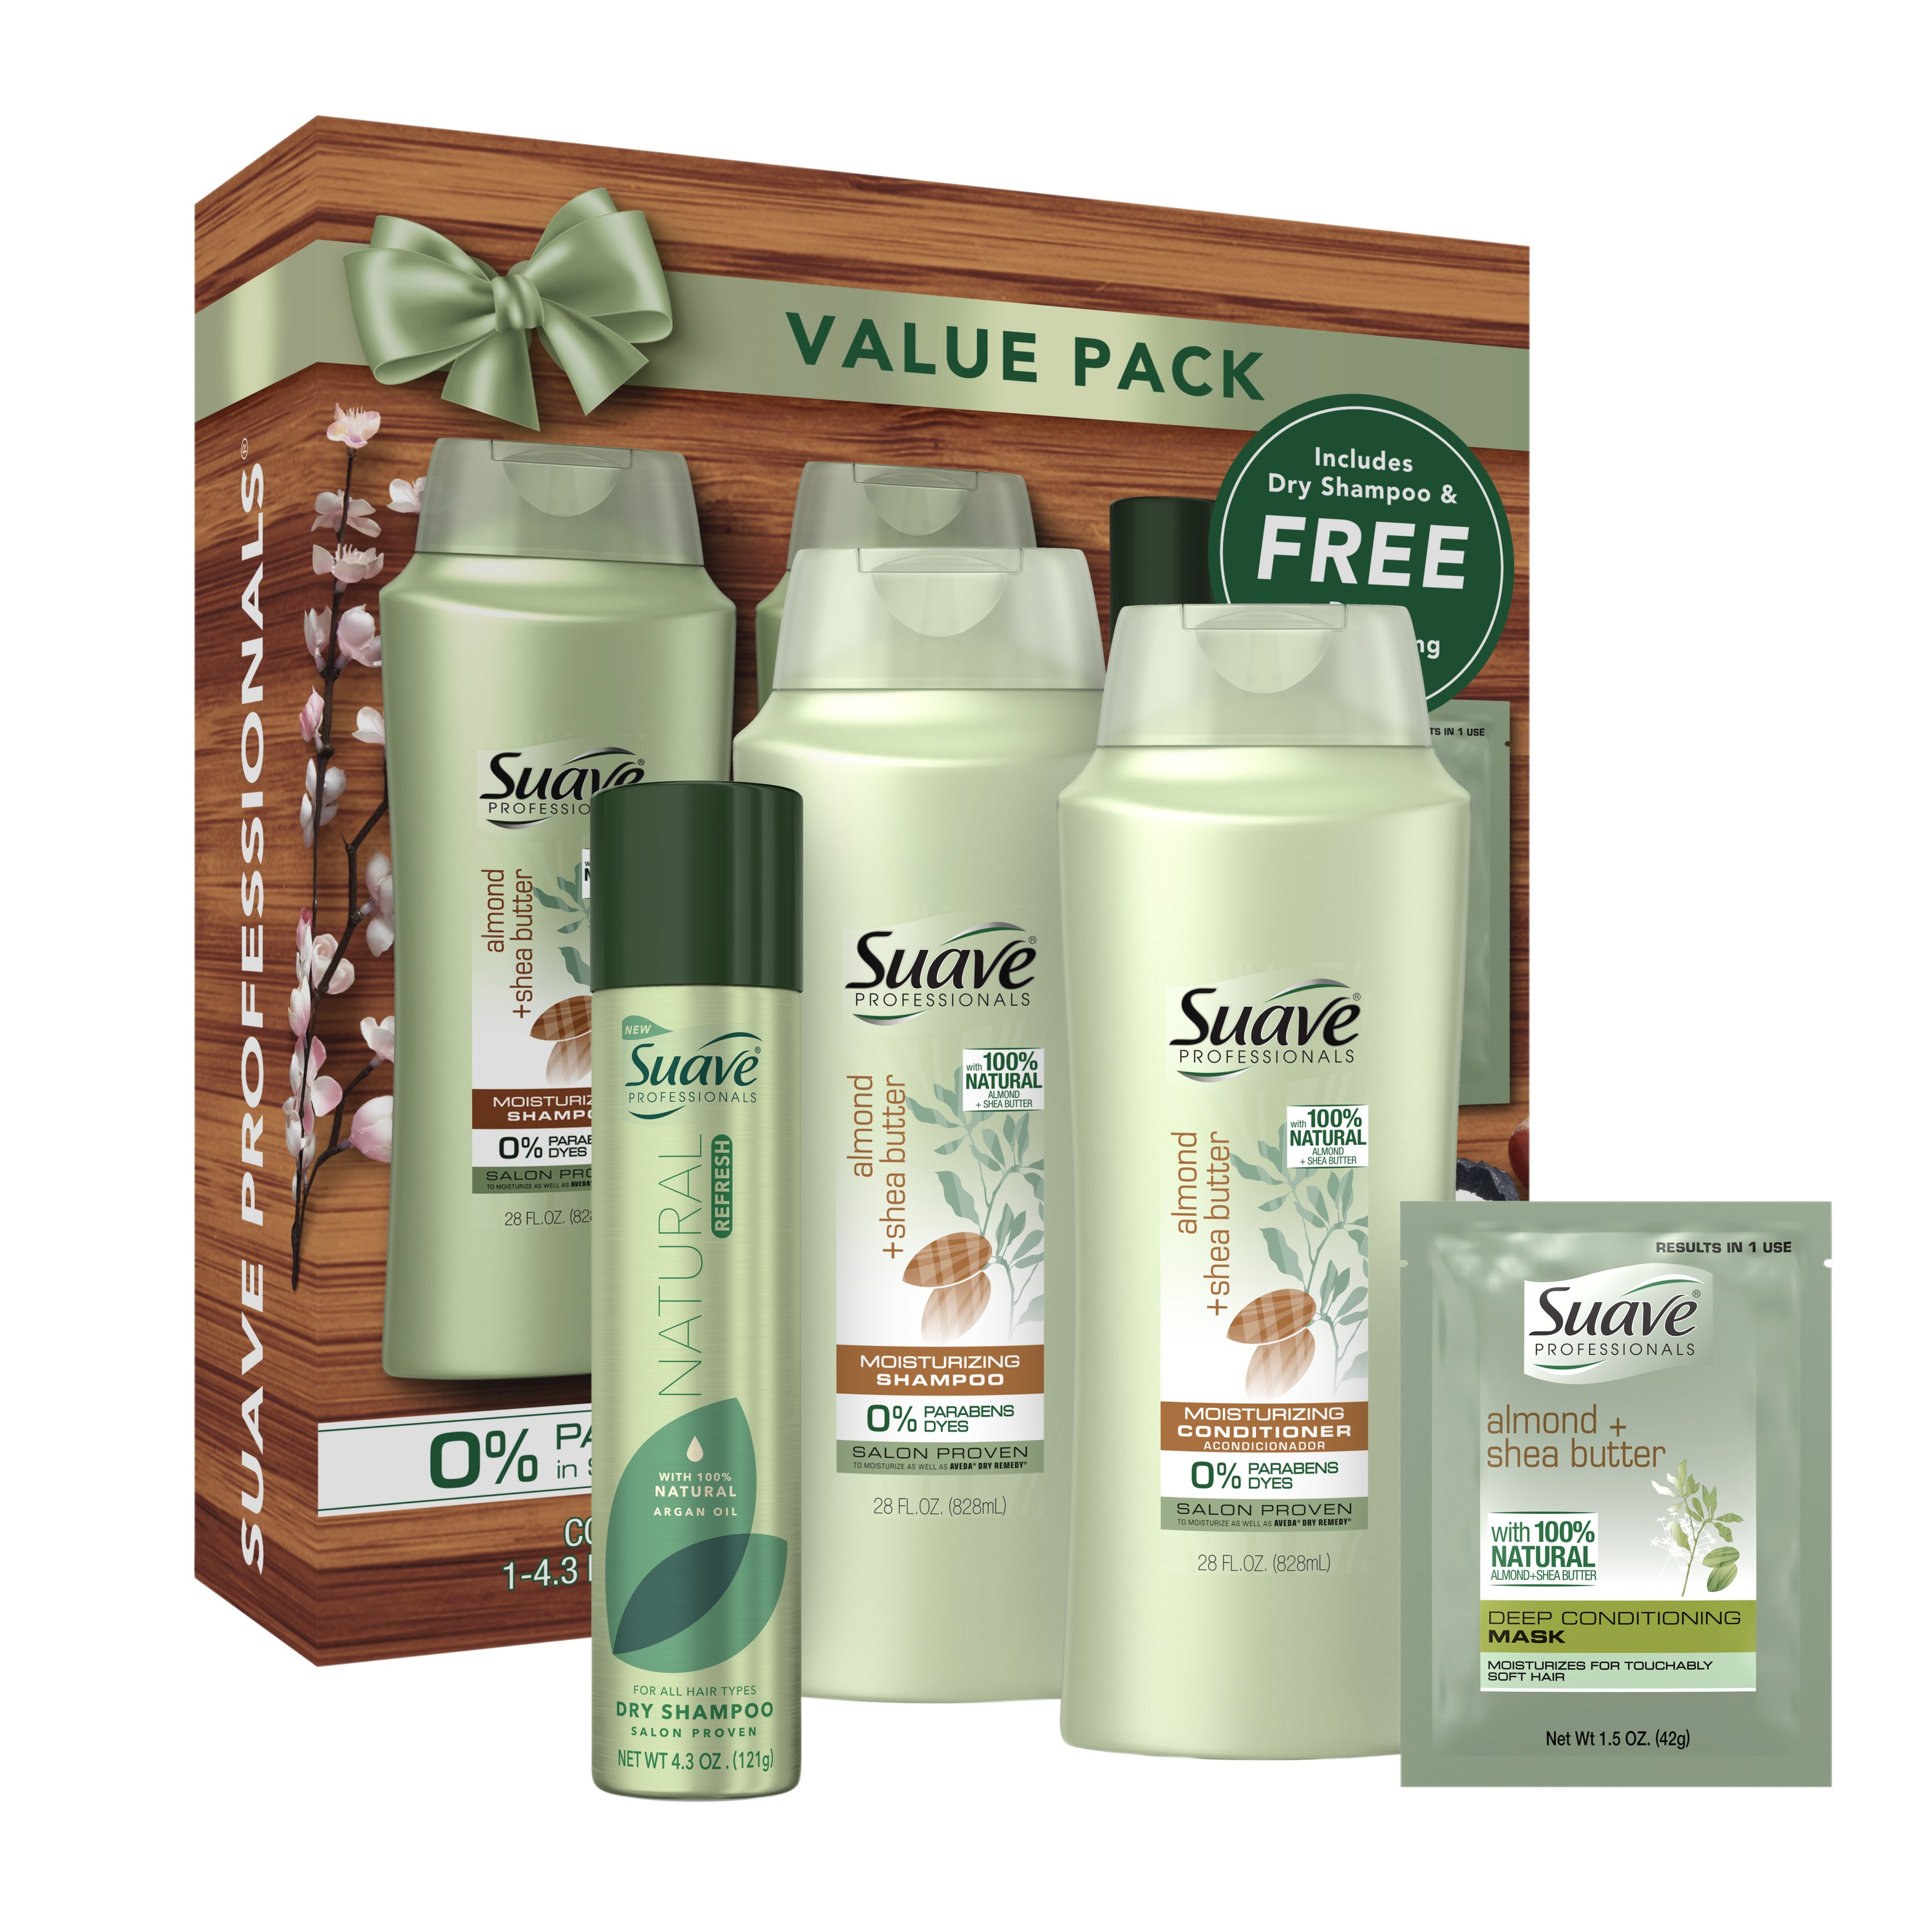 Suave 4-Pc Hair Gift Set Almond + Shea Butter (Shampoo, Conditioner, Hair Mask, Dry Shampoo) ($13.35 Value)